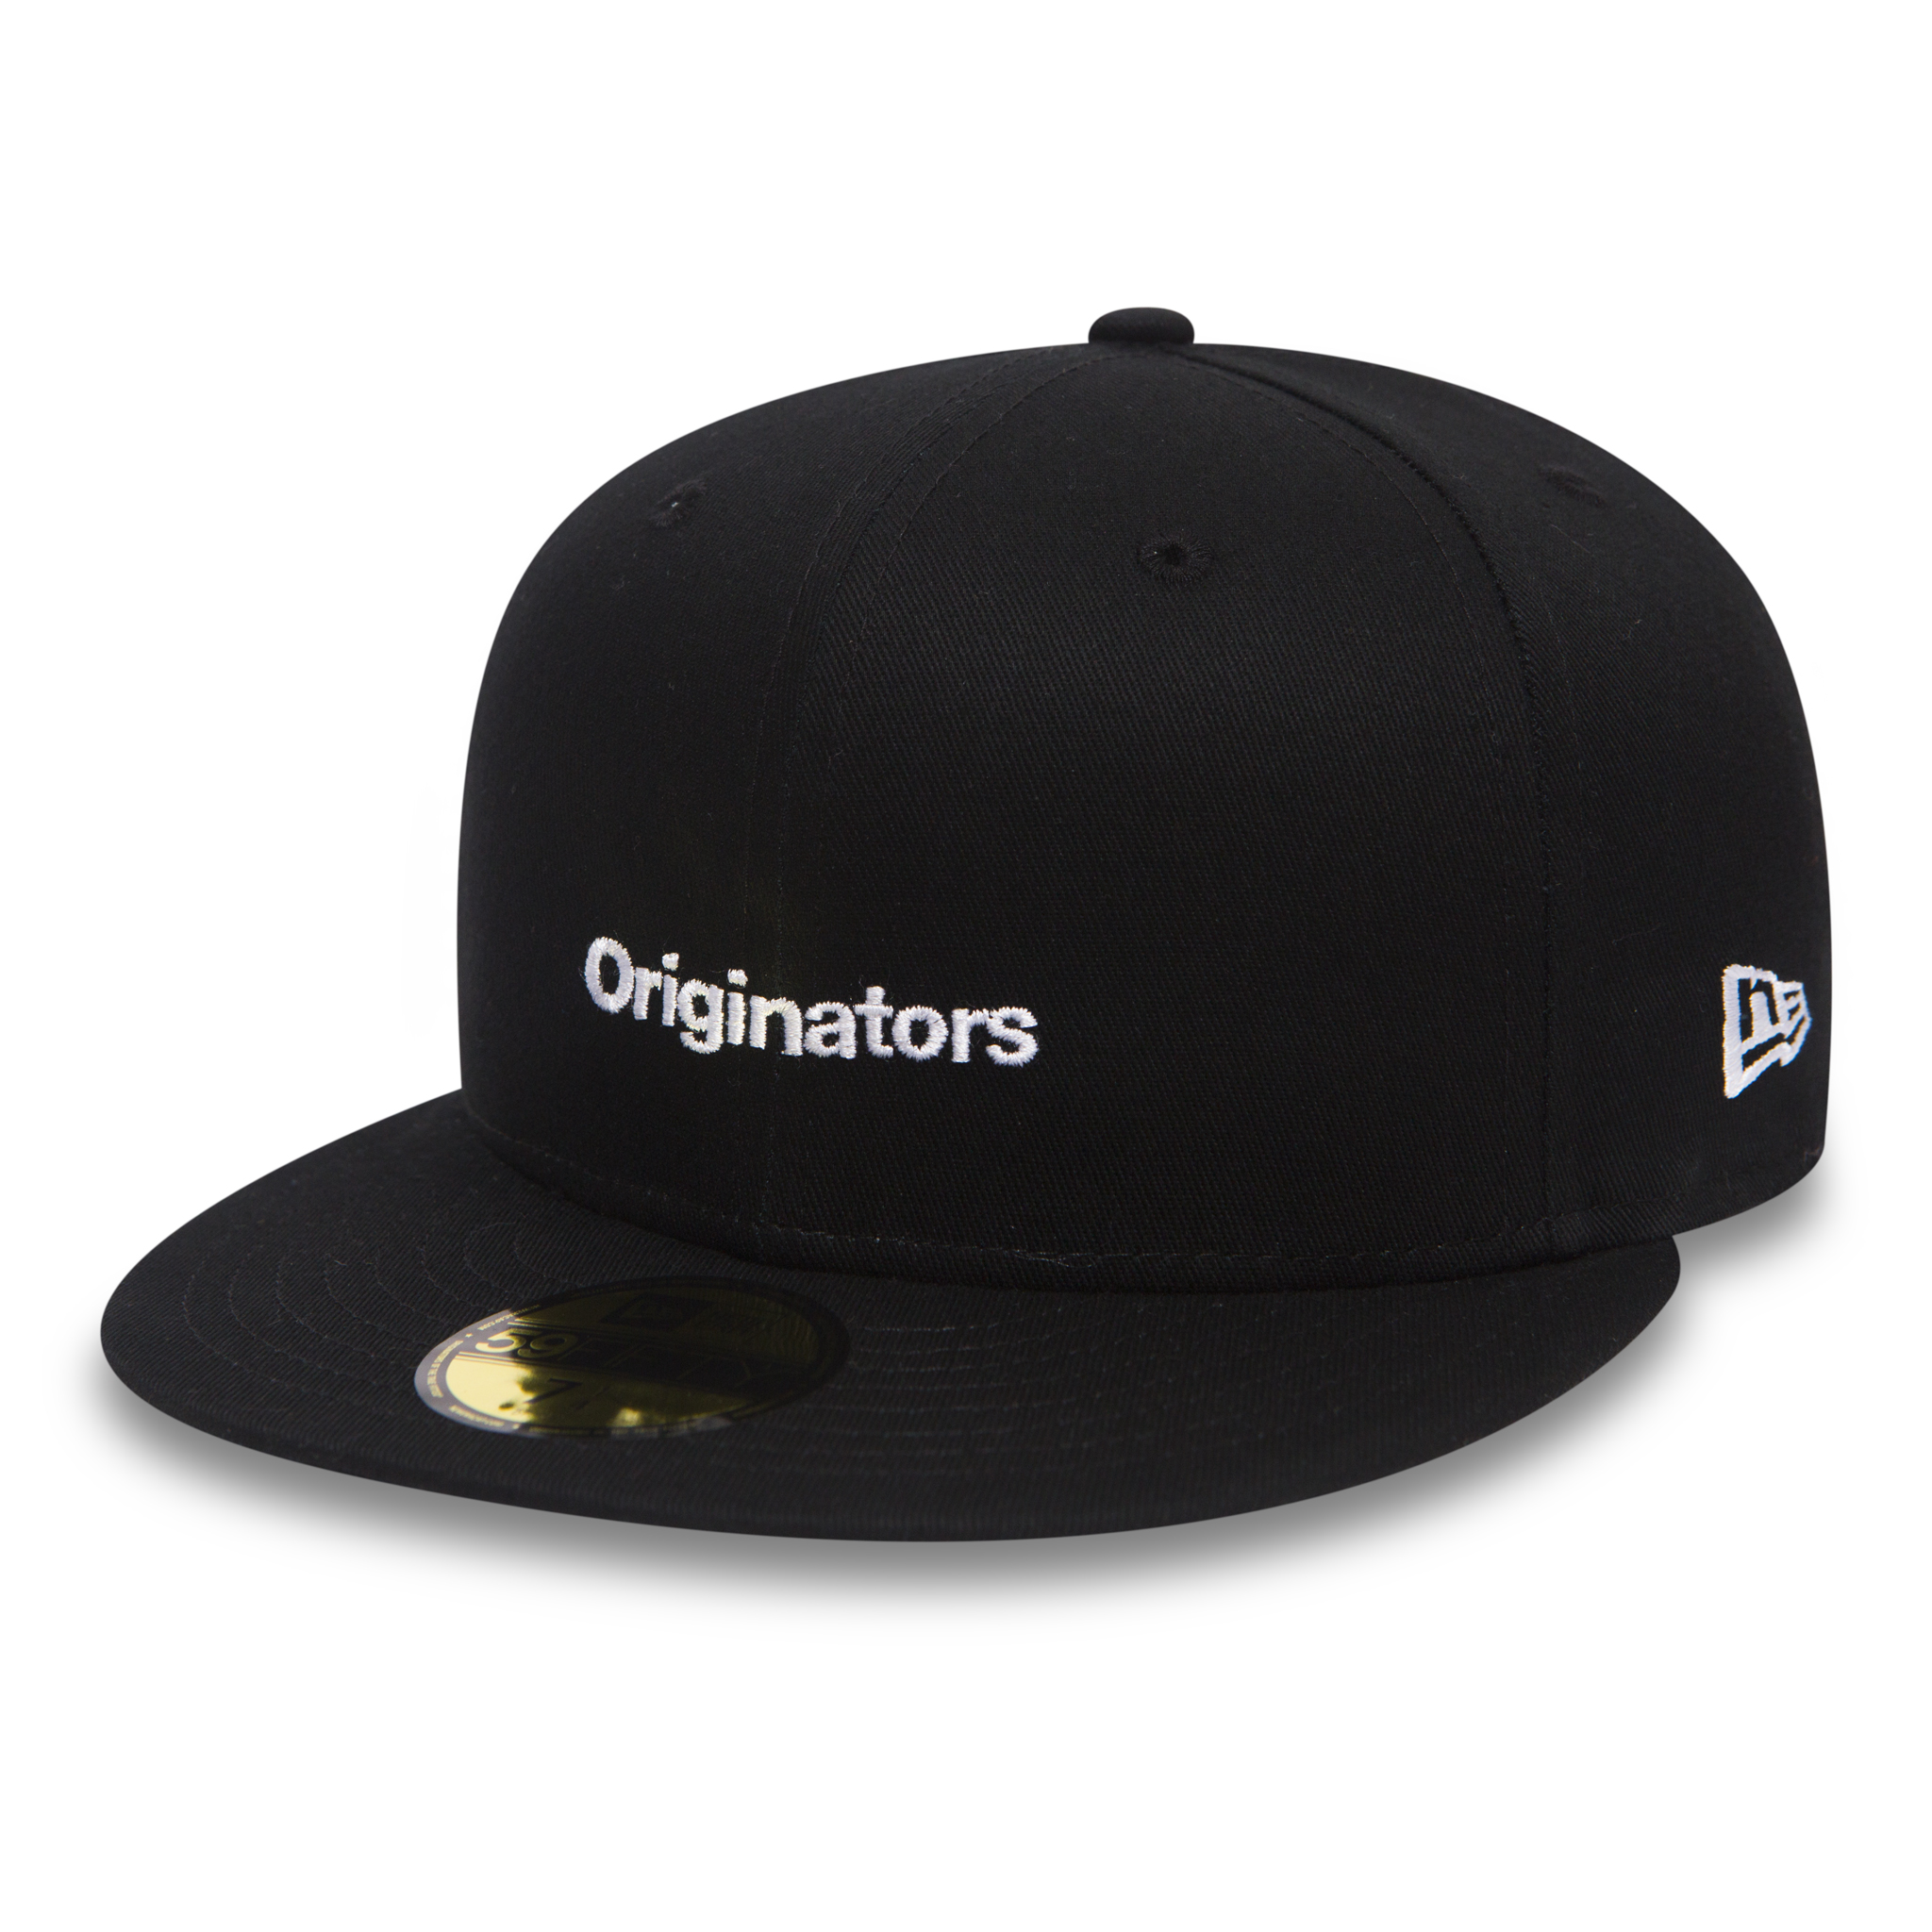 NewEra_Fa17_80524533 NE TRUE ORIGINATORS 5950 NEWERA BLKWHI